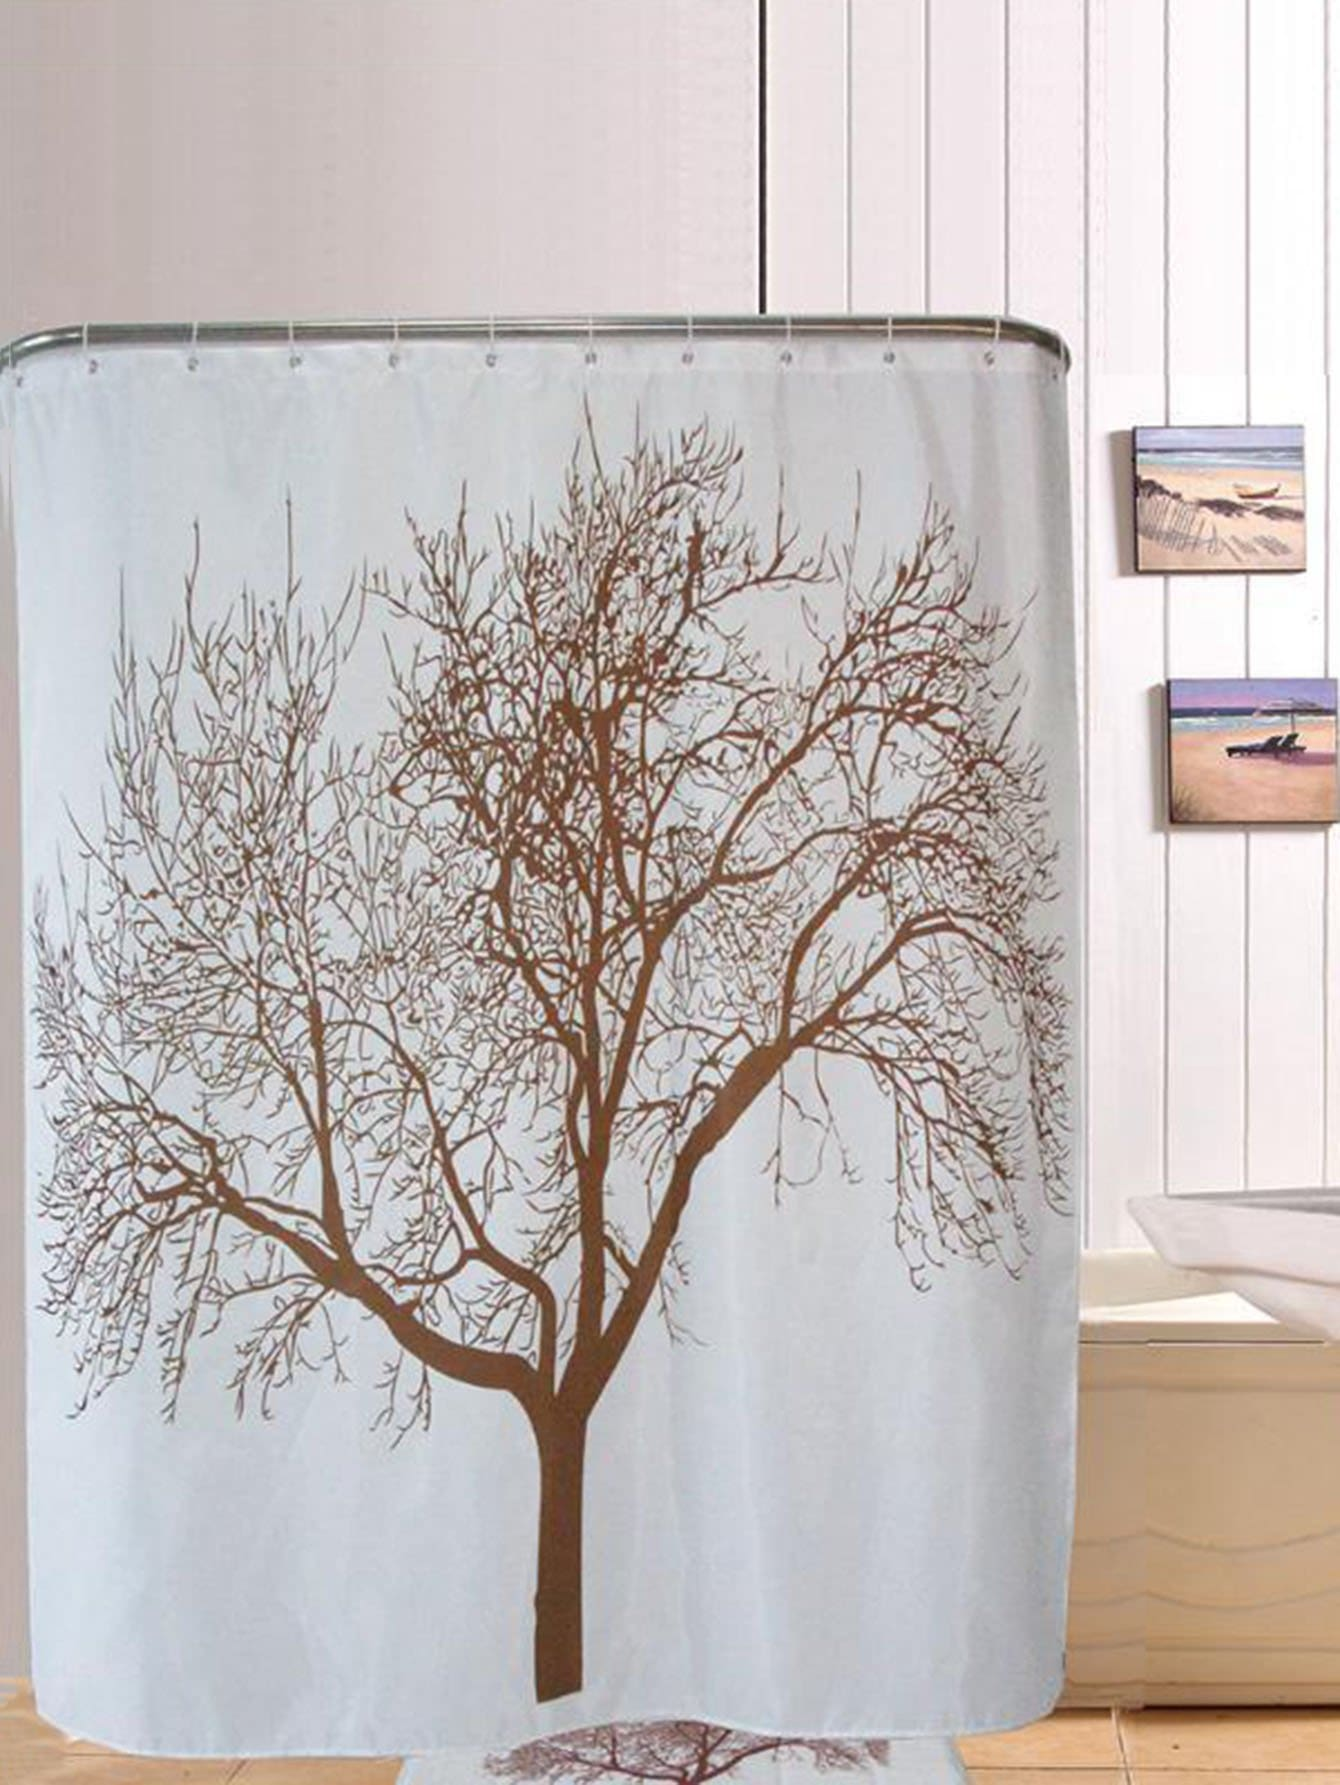 Tree Pattern Shower Curtain 1pc With Hook 12pcs afro hair lady immersed in her own world pattern shower curtain